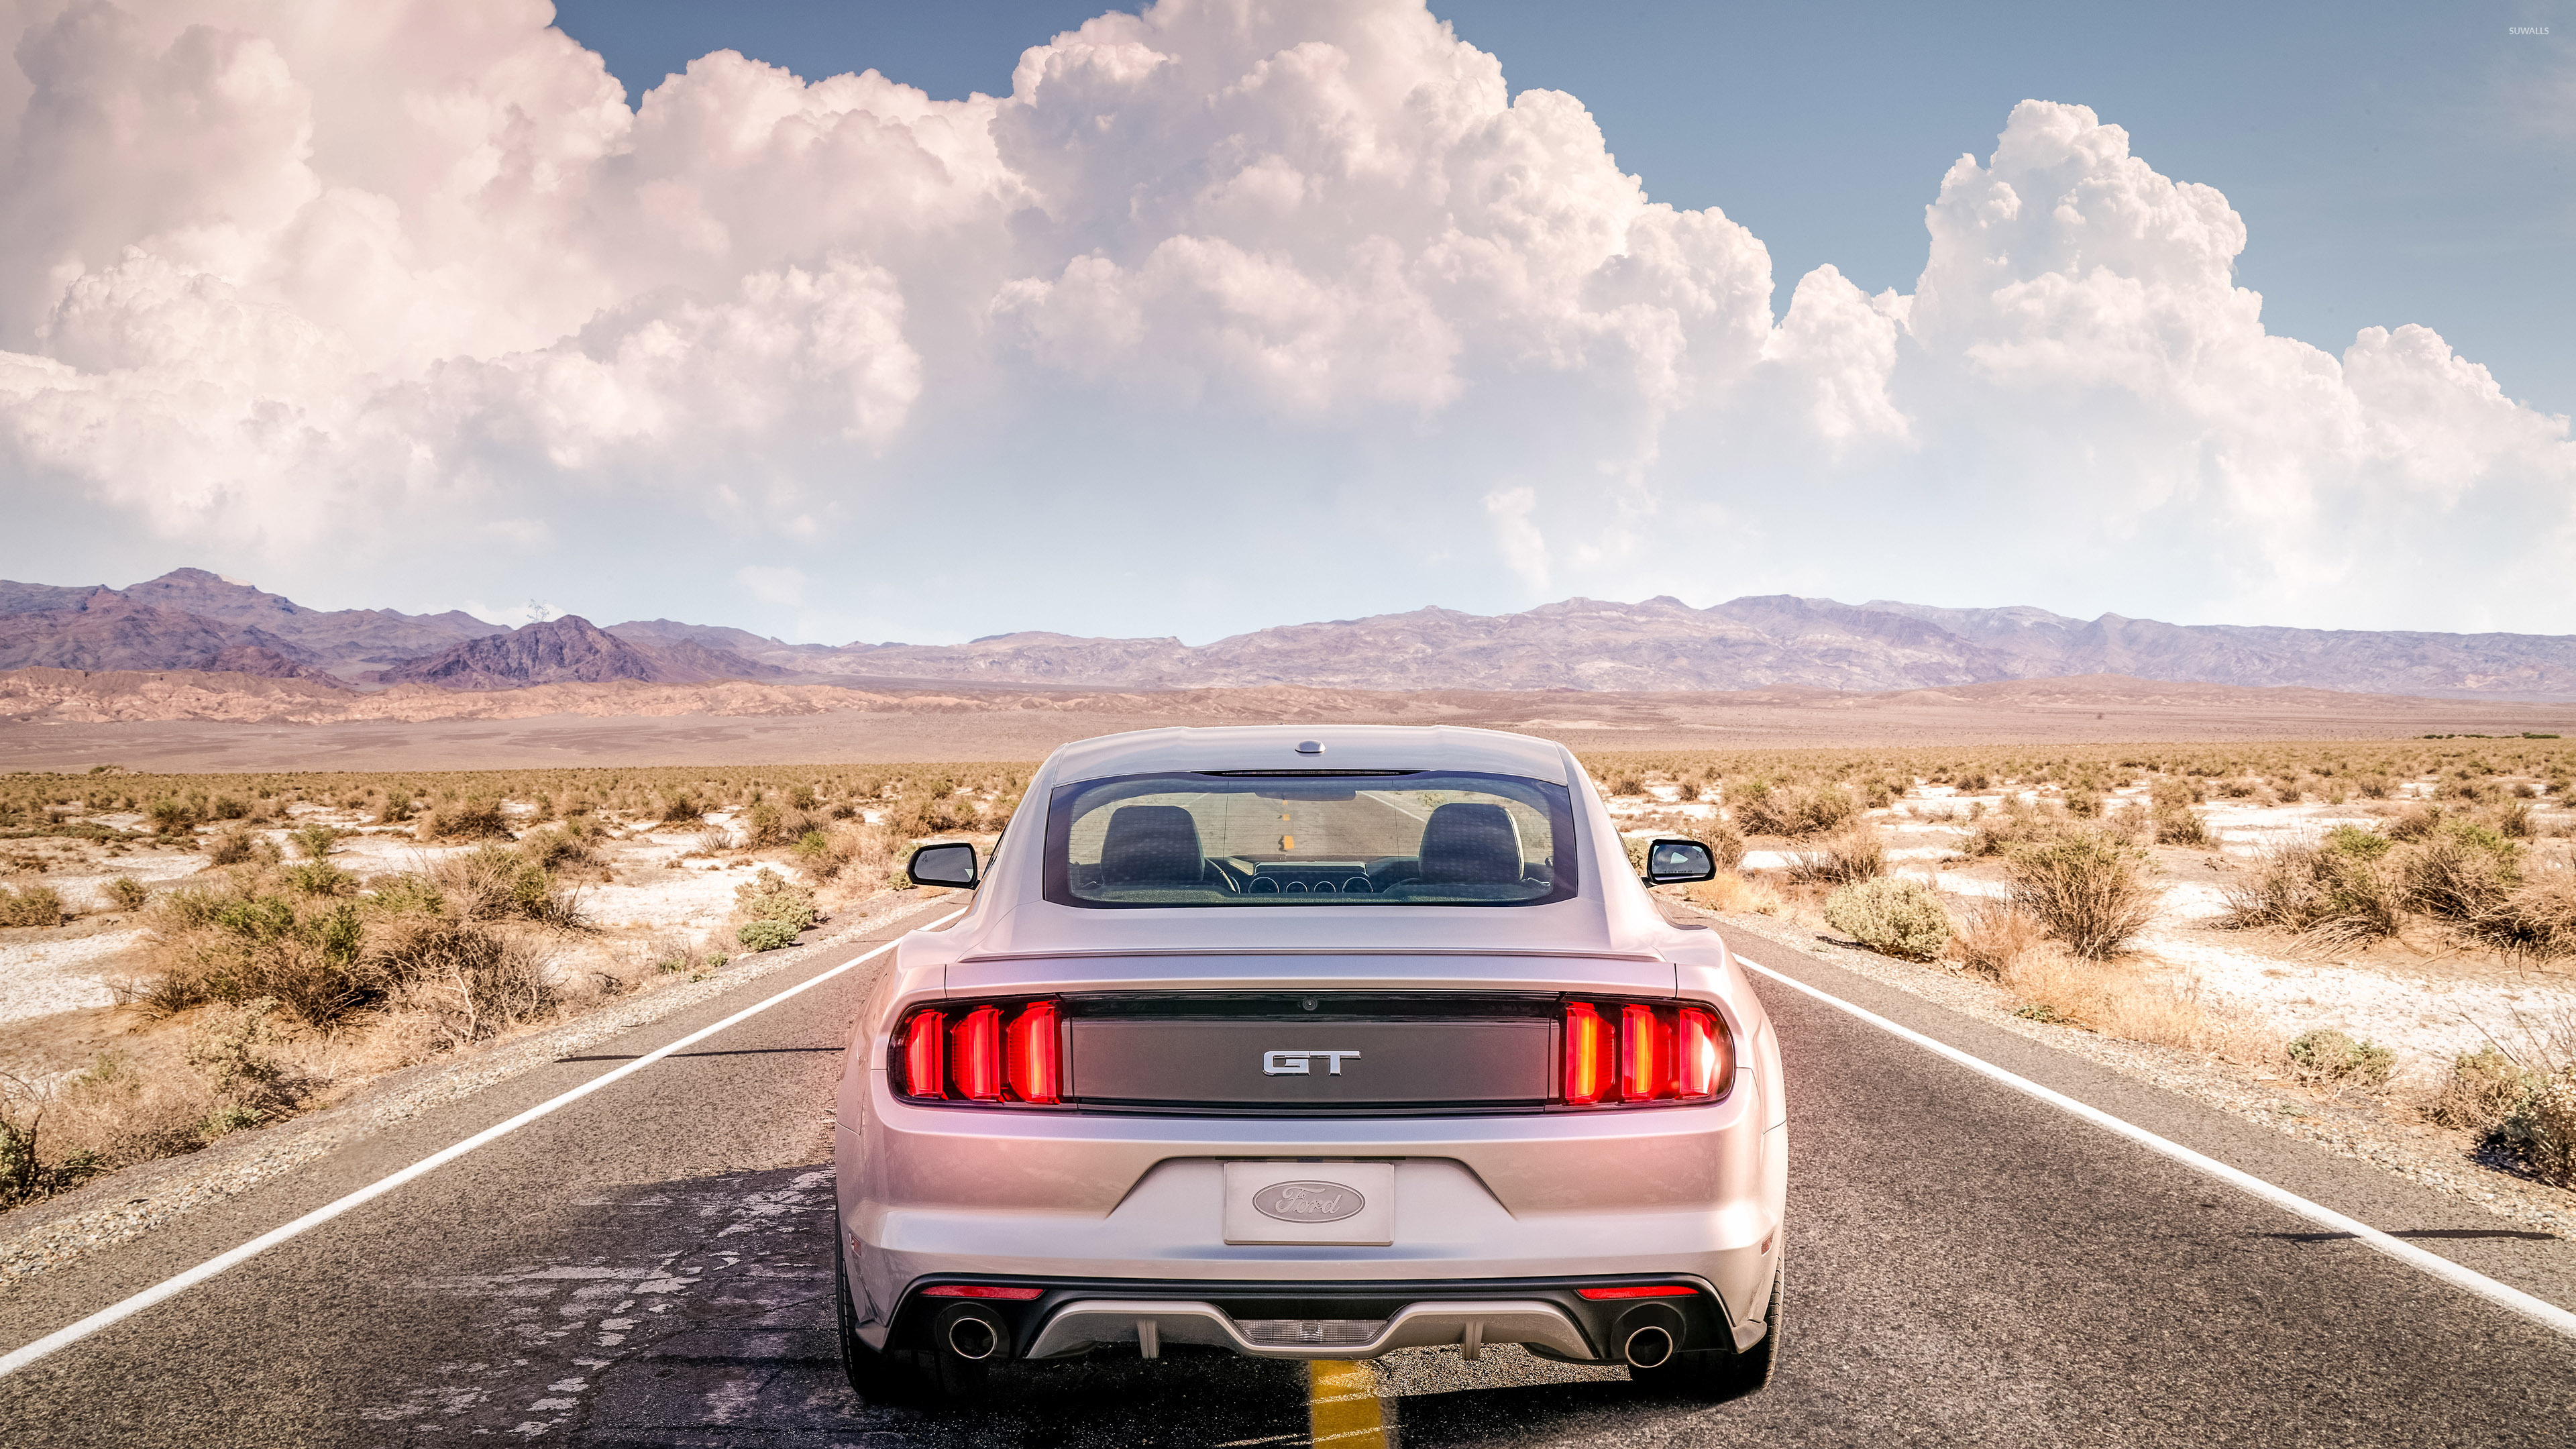 Ford Mustang GT 4 Wallpaper Car Wallpapers 47812